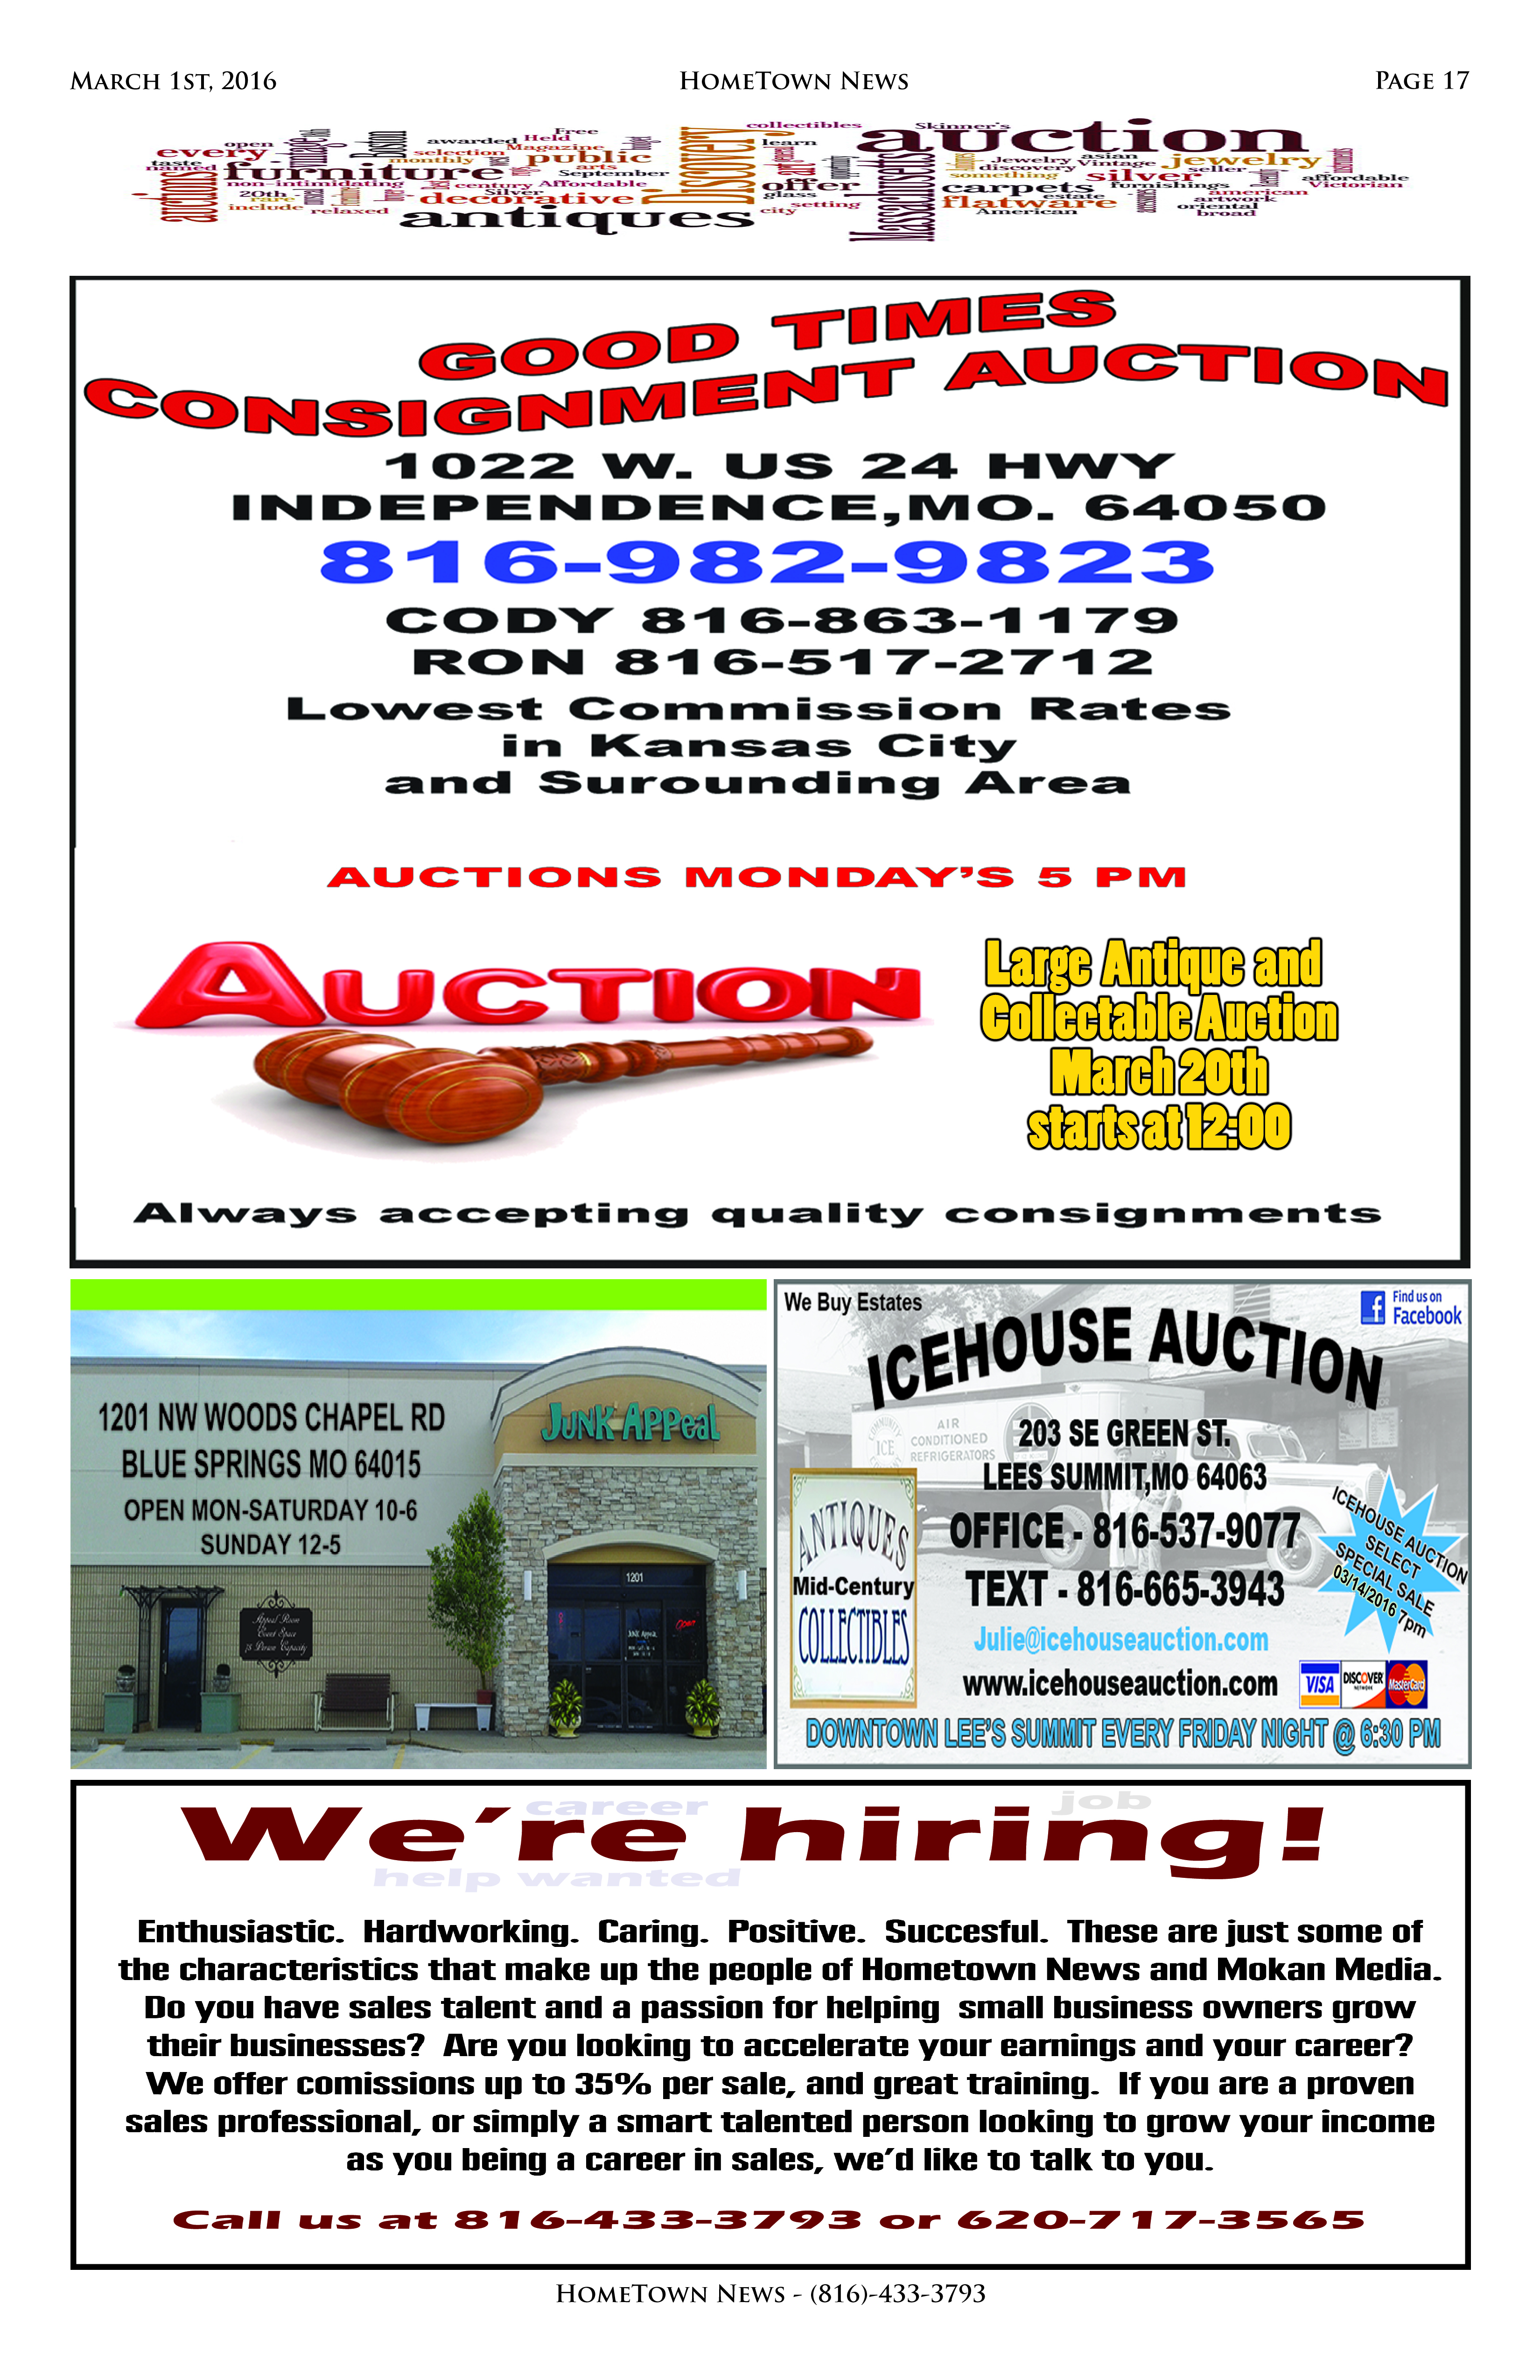 HTN8 - 17  Auction Antiques